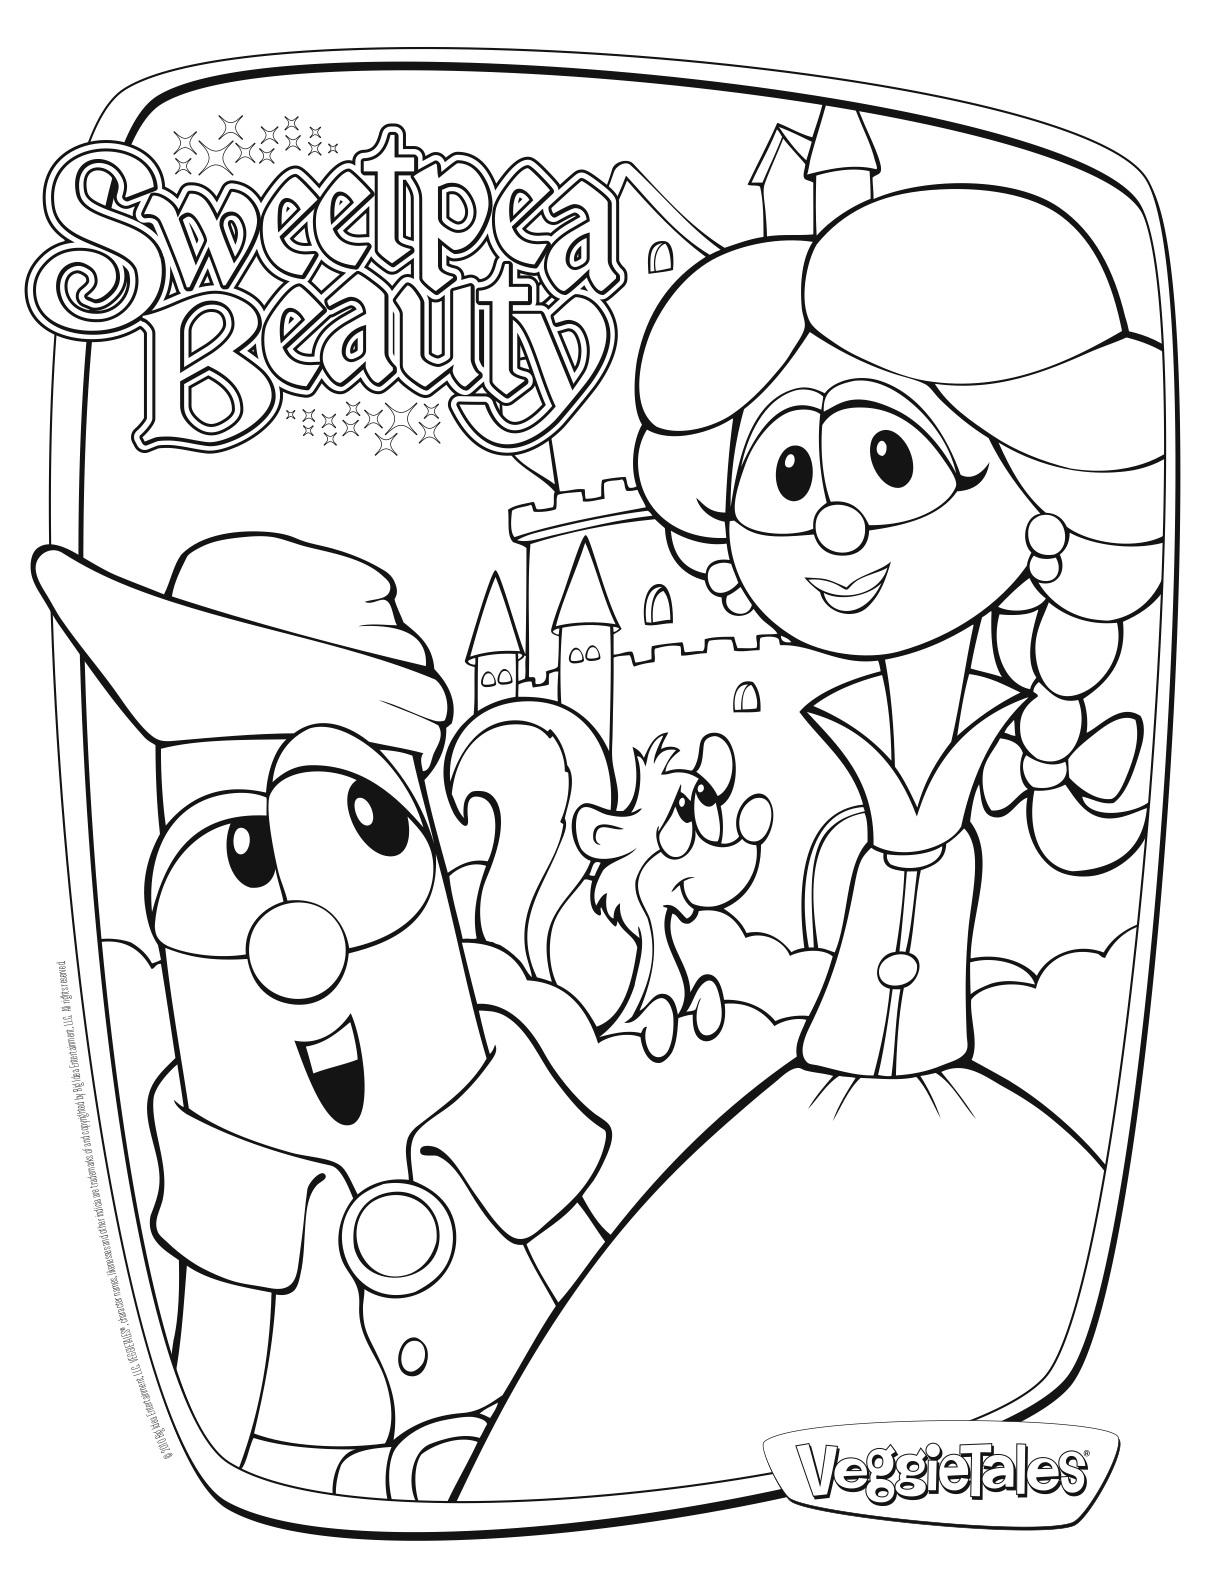 veggie tales coloring pages - coloring